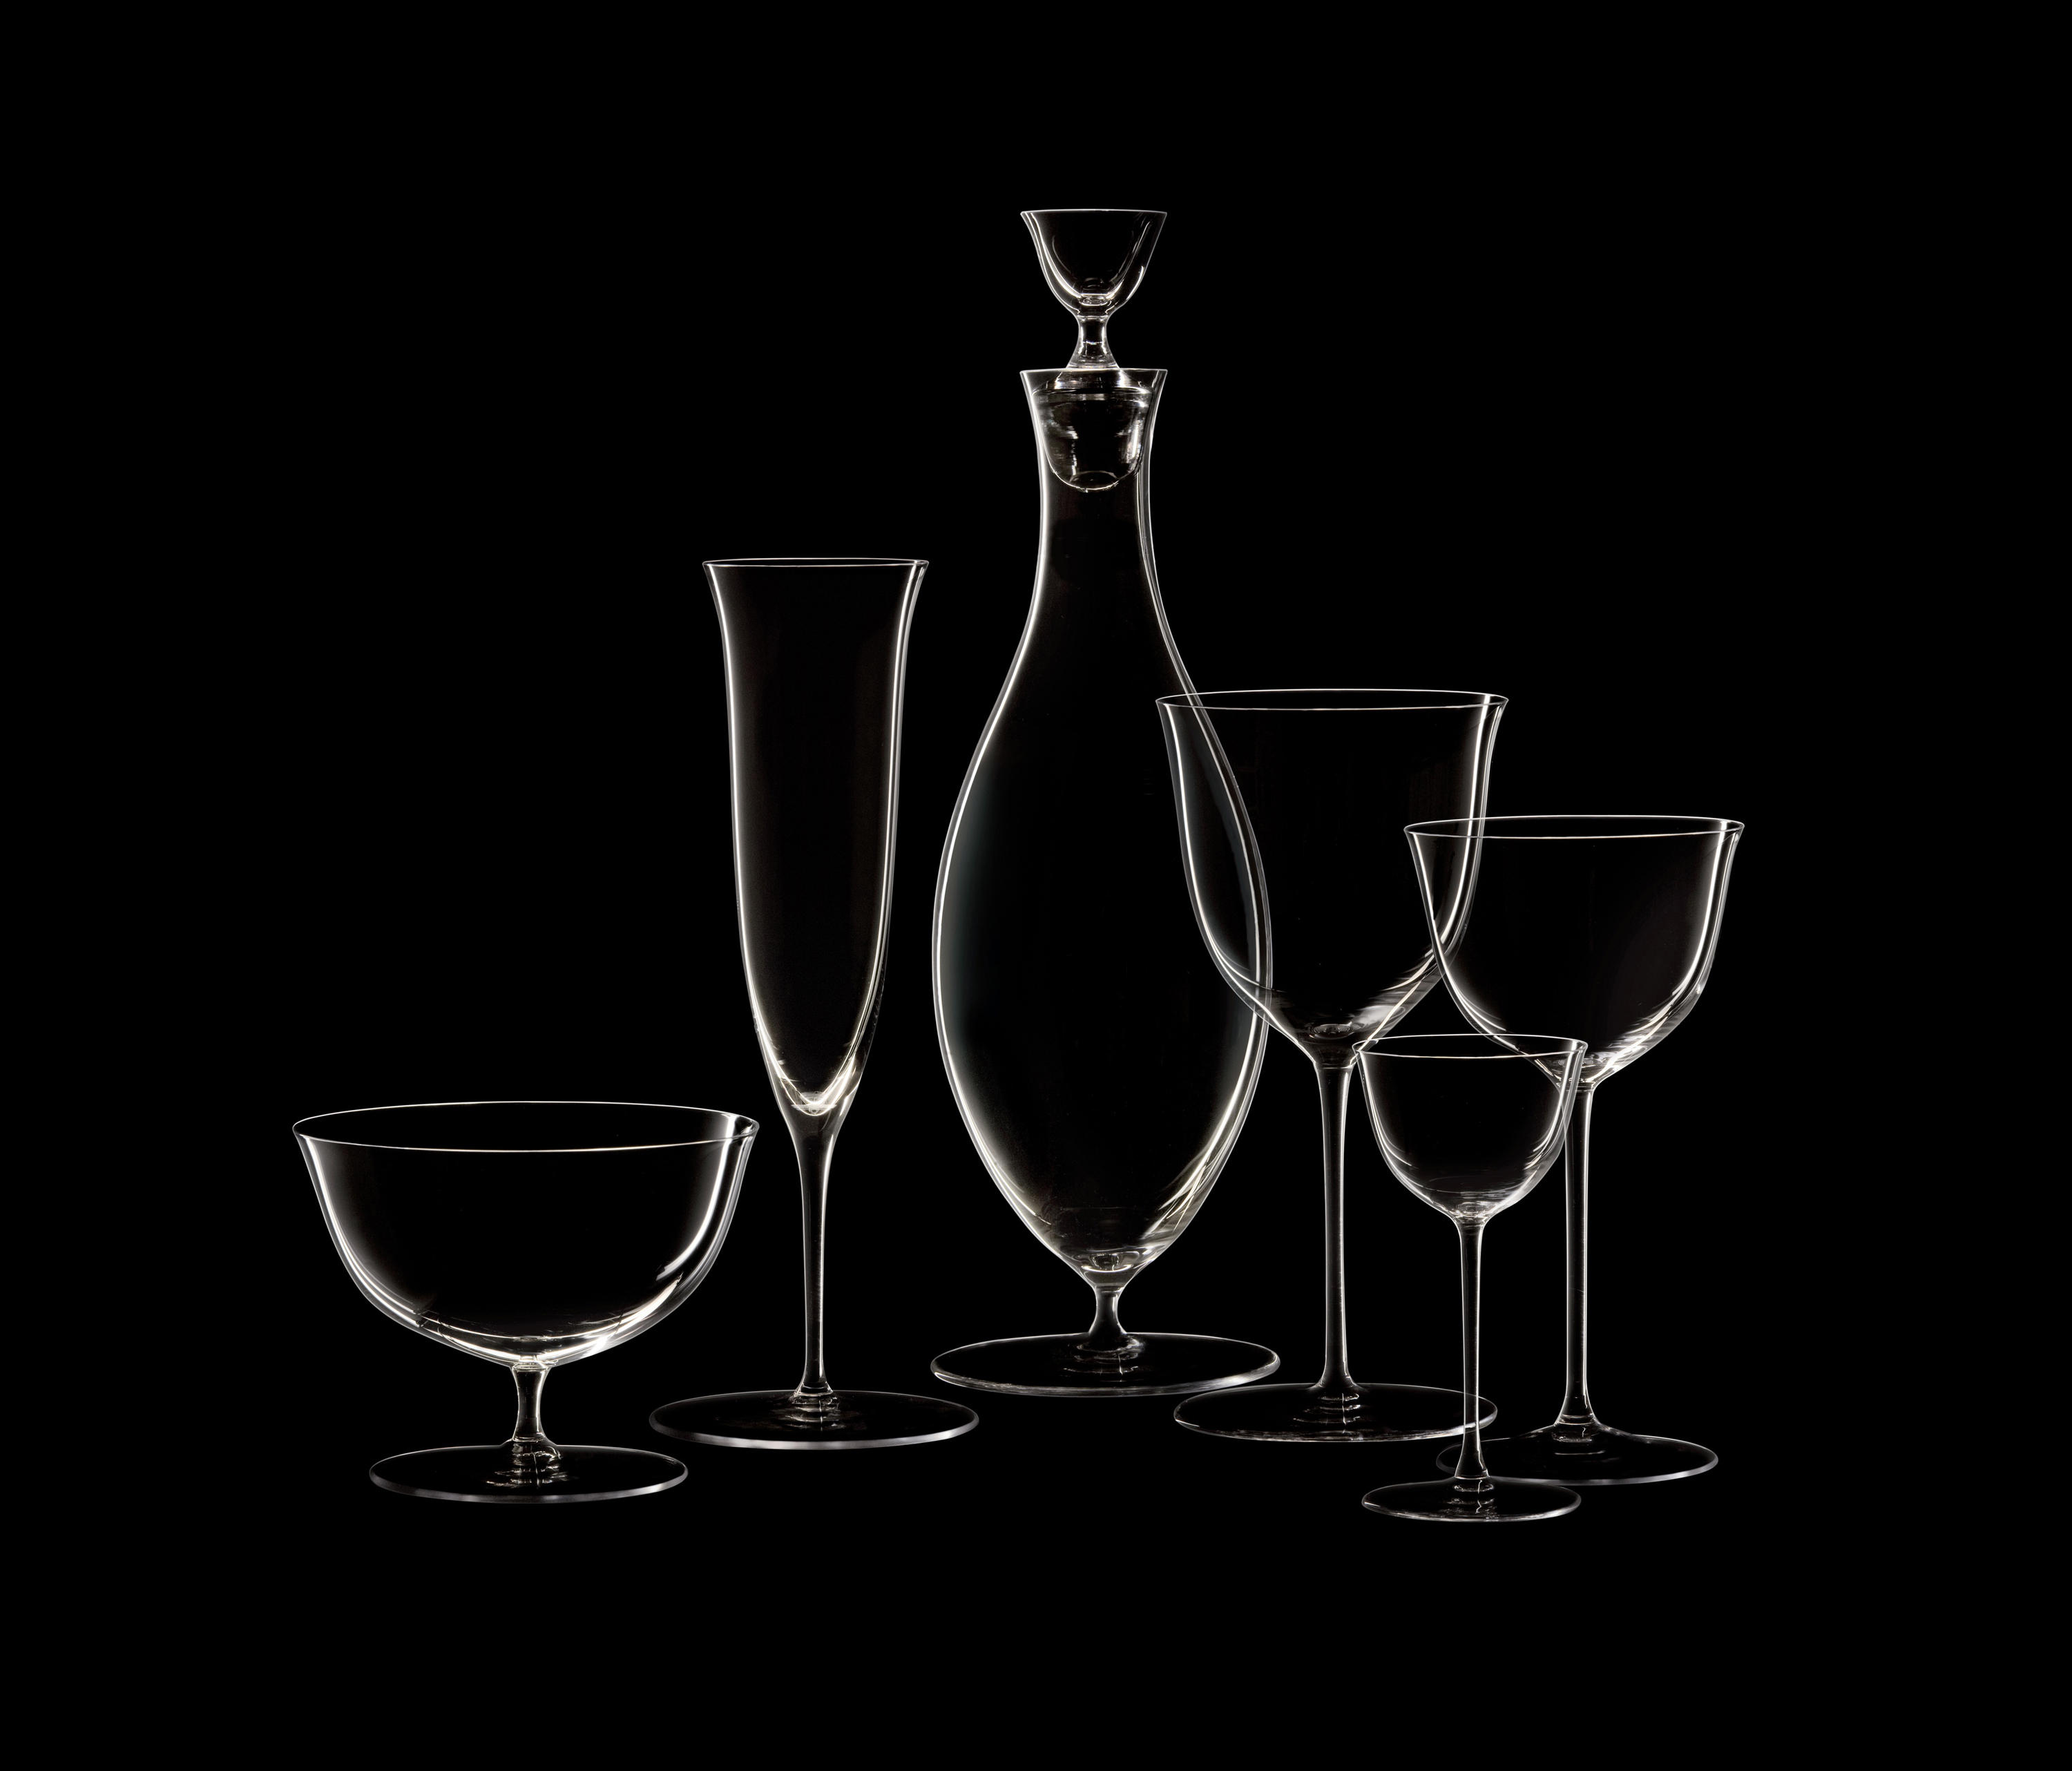 Drinking Set No.238 Goblet VD - Set of 6 - The perfectly flowing contours of these original Hoffmann shapes make this muslin glass service a classic. Josef Hoffmann designed the elegantly balanced glasses for Lobmeyr as early as 1917. The material, extremely delicate muslin glass, hand-blown in wooden shapes, gives the series its elegance.  The minimum order is 6 pieces per order | Matter of Stuff